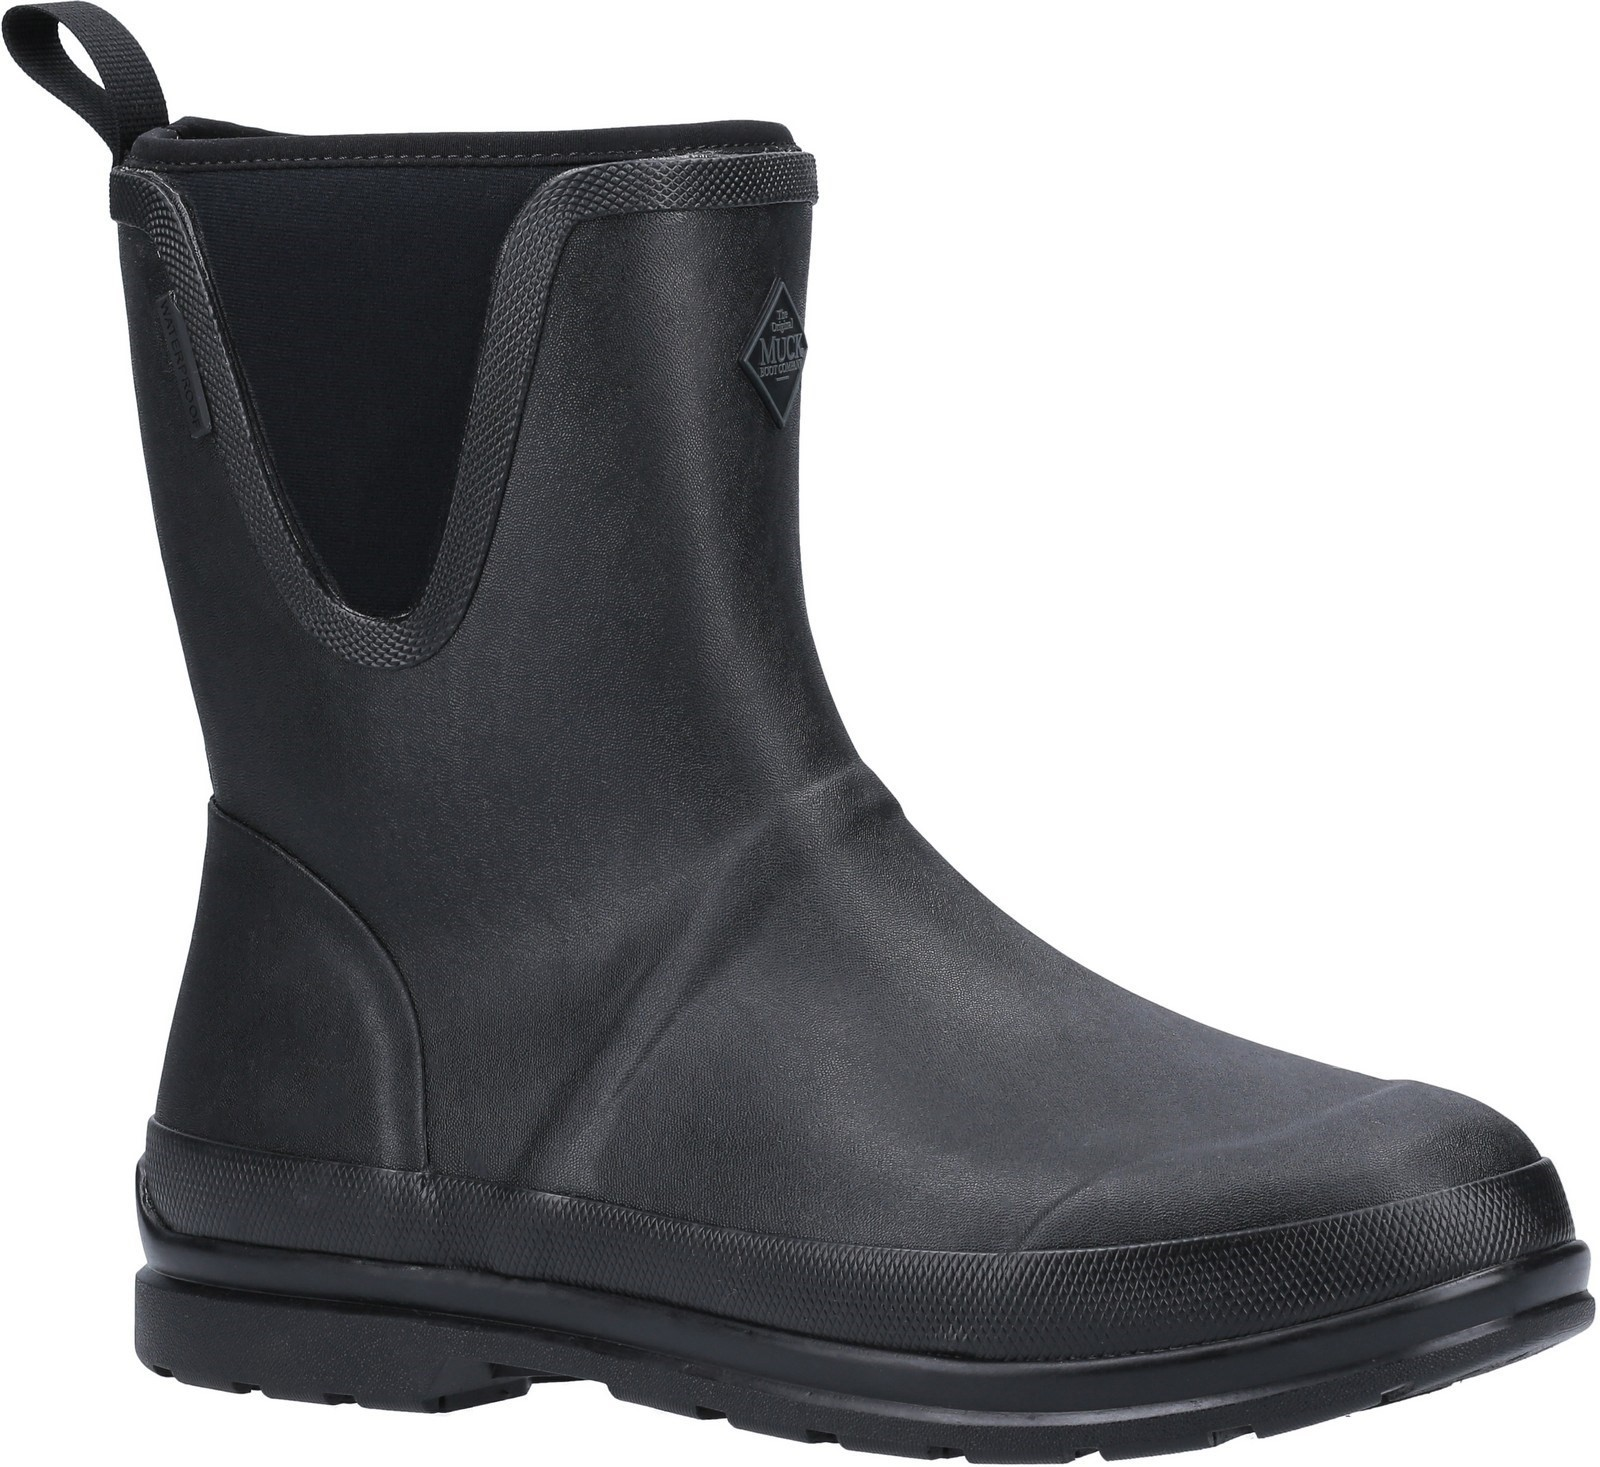 Muck Boot Originals Mid Black Size 8 UK